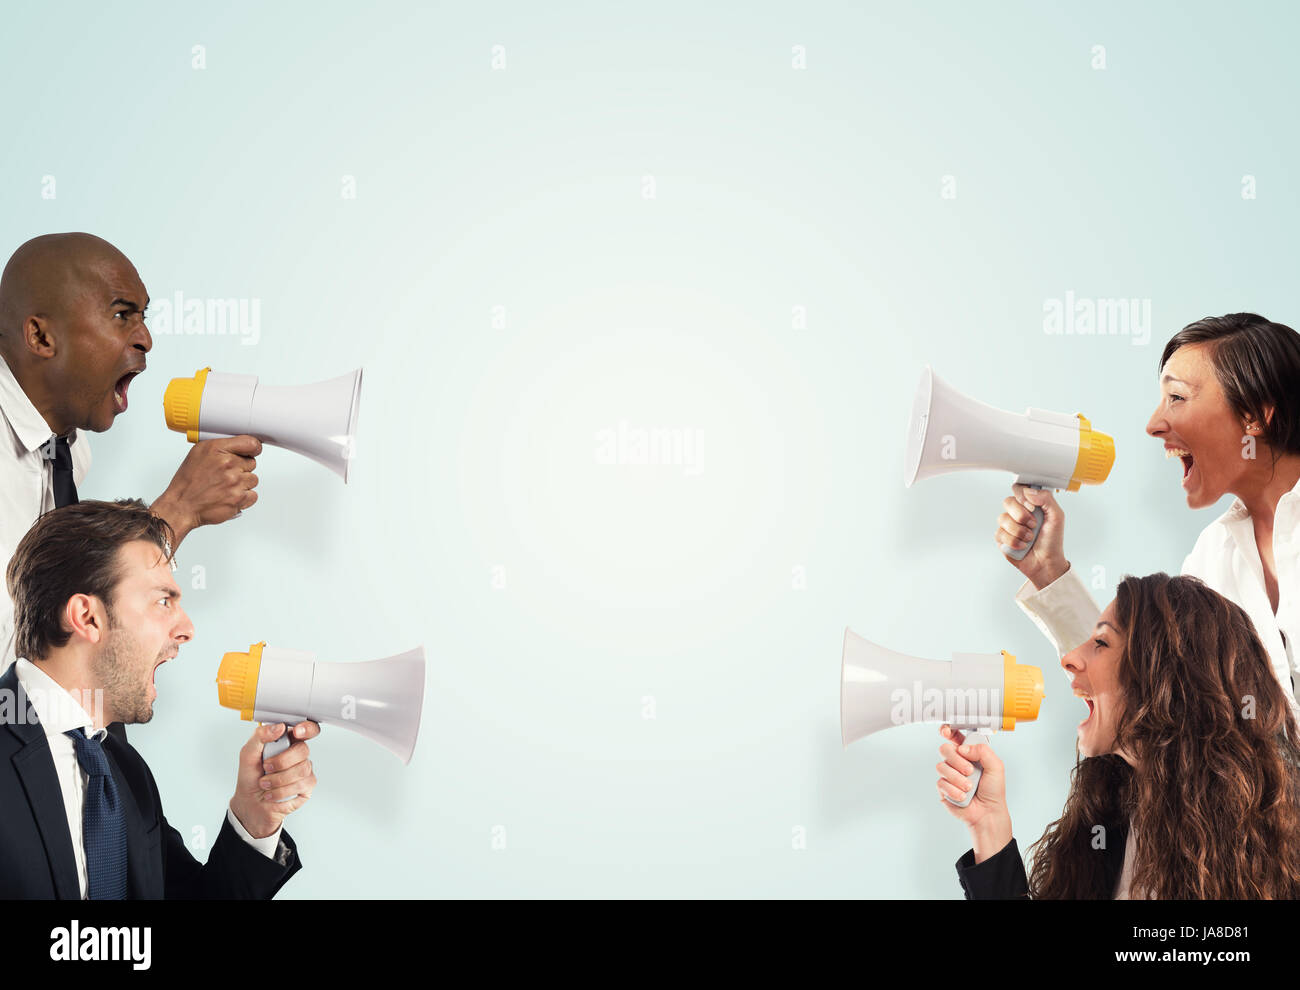 Stress concept with screaming businesspeople. men versus women Stock Photo